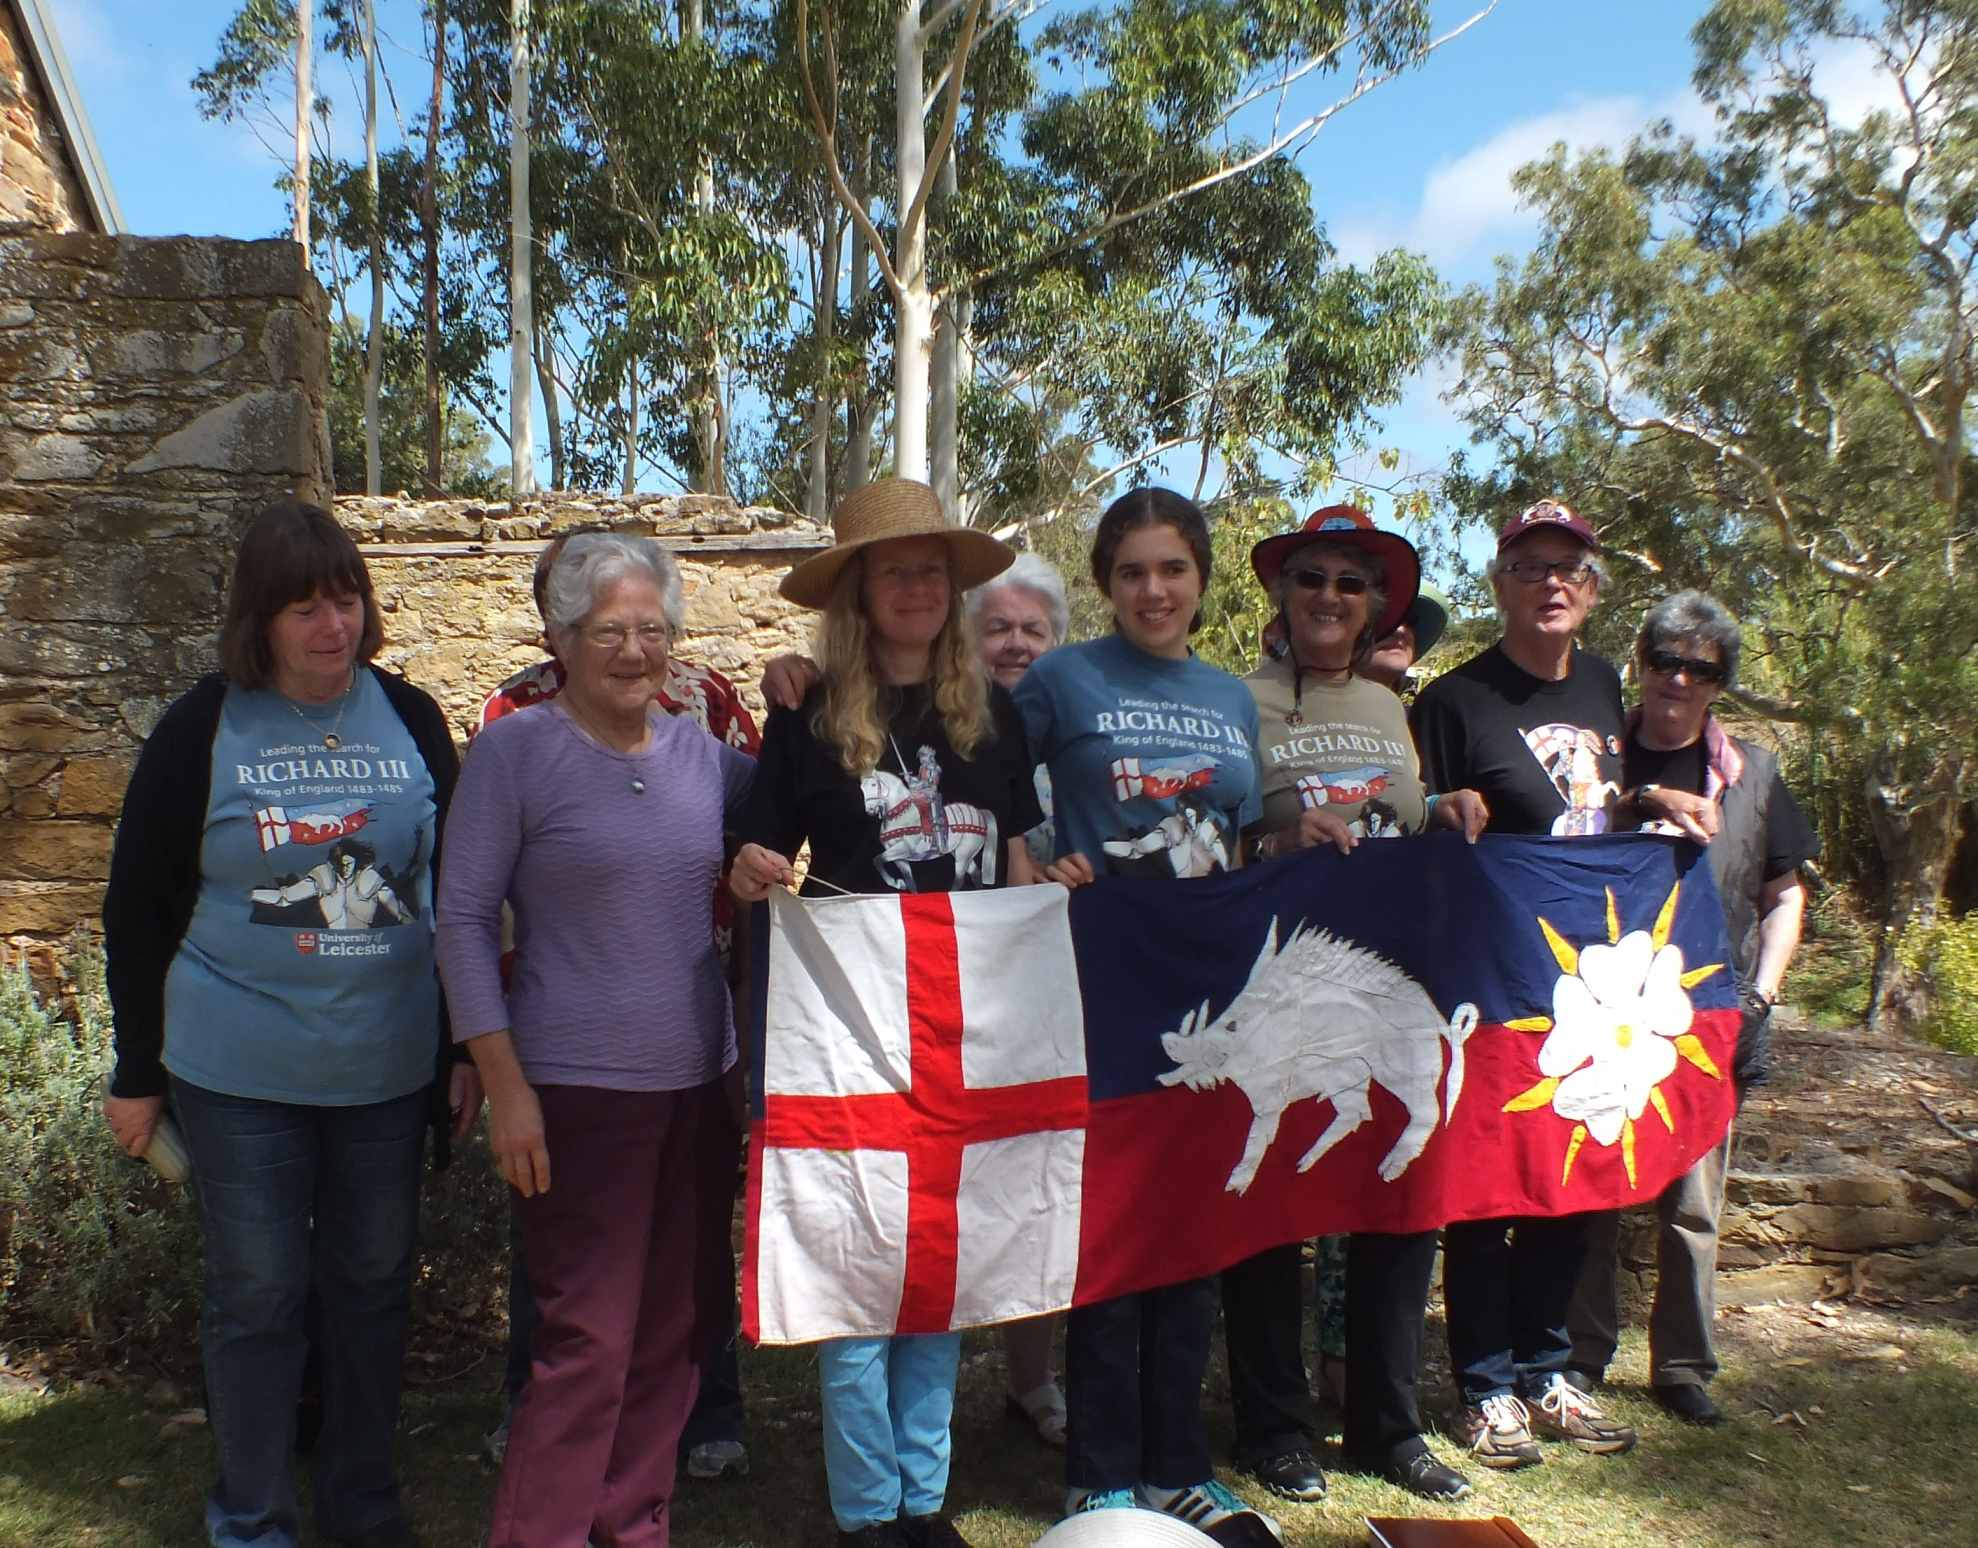 Battle of Bosworth winery picnic march 2015 members